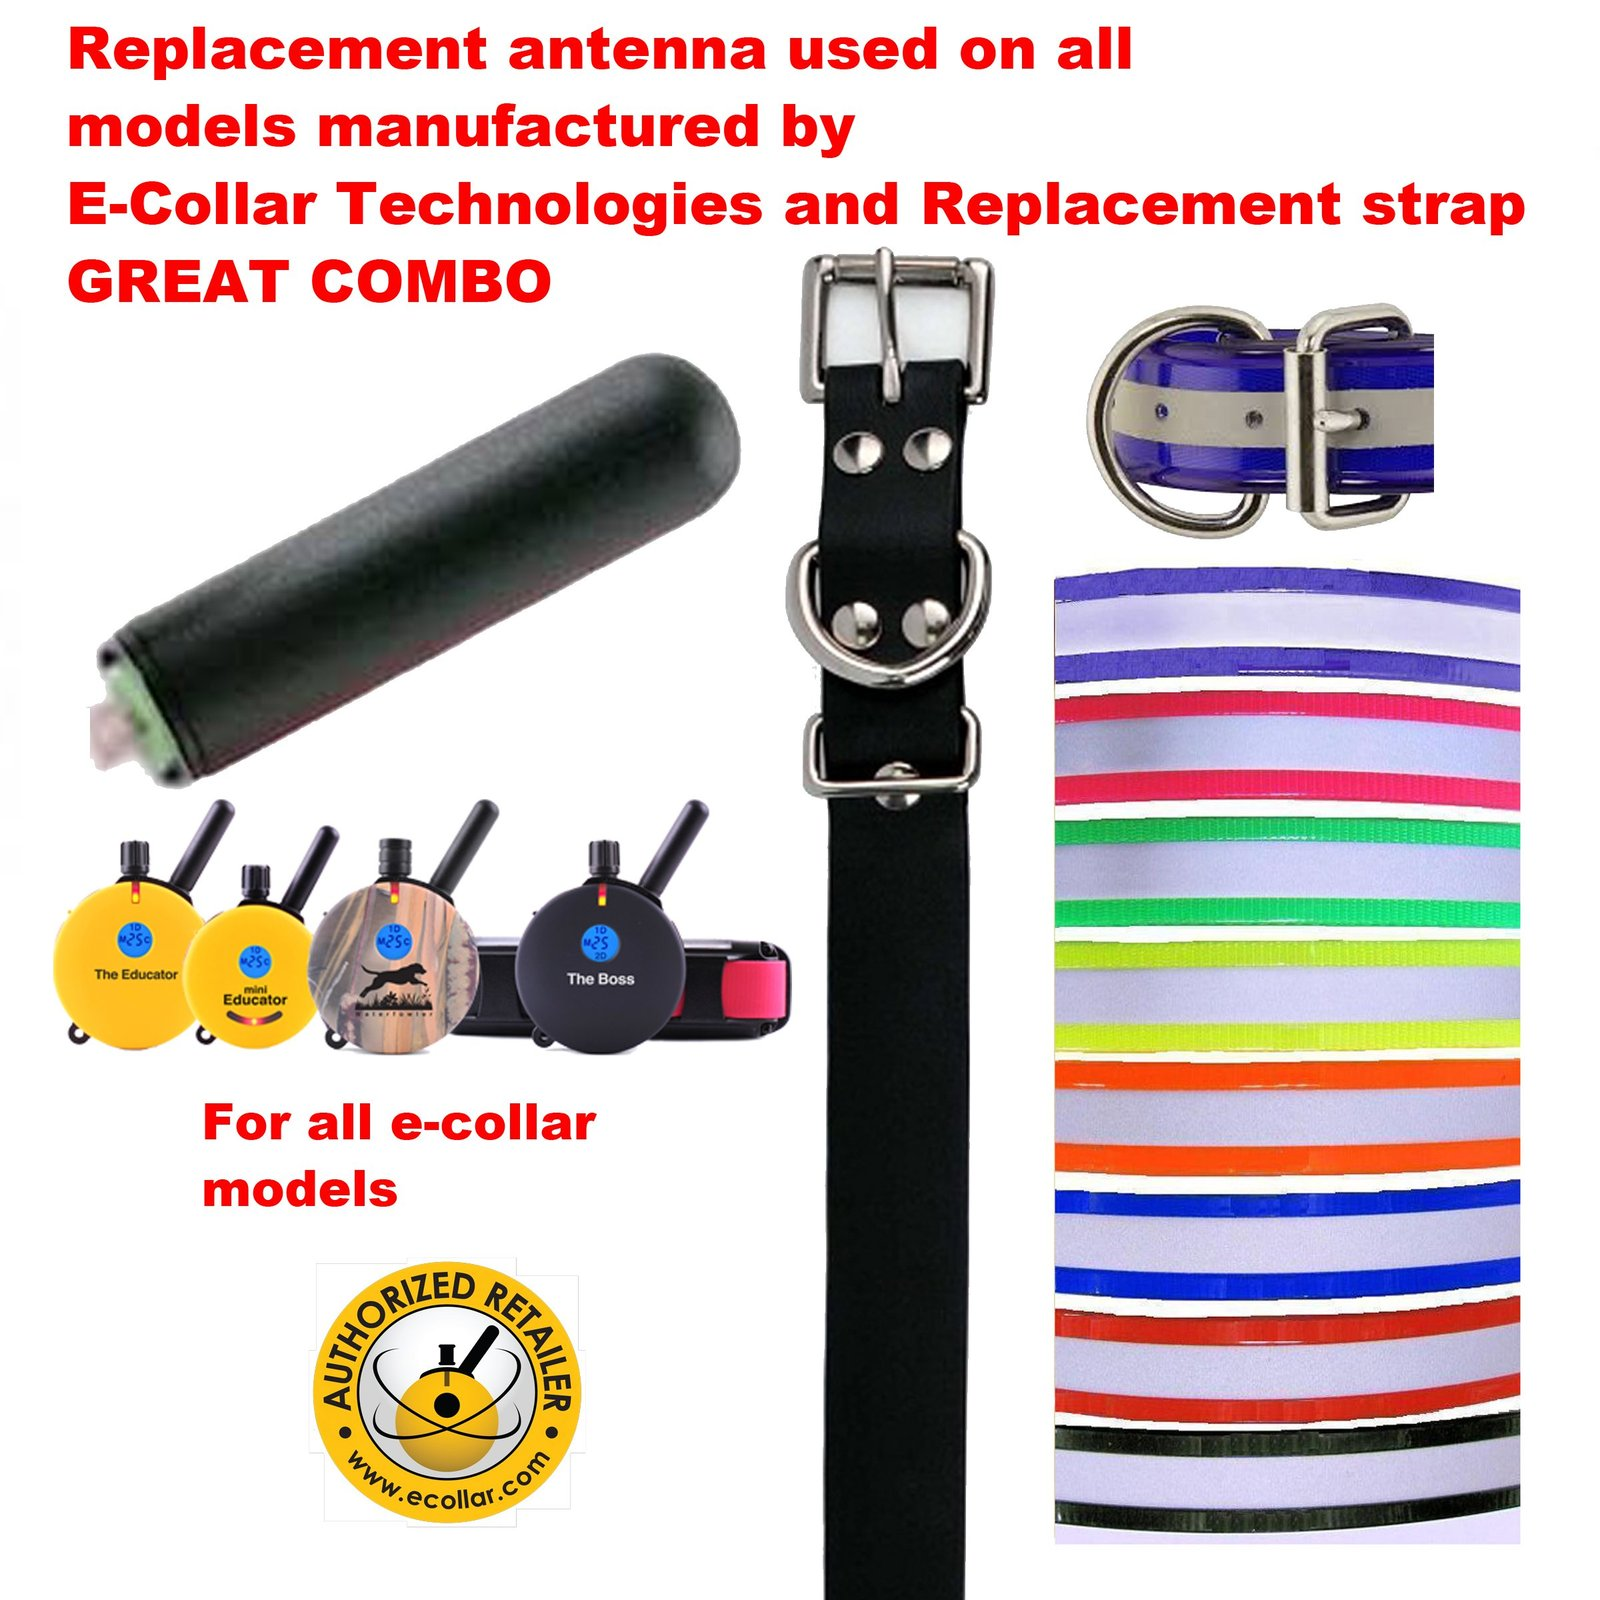 Educator E Collar Replacement Strap and Long Range Antenna Bundle - Your Choi...